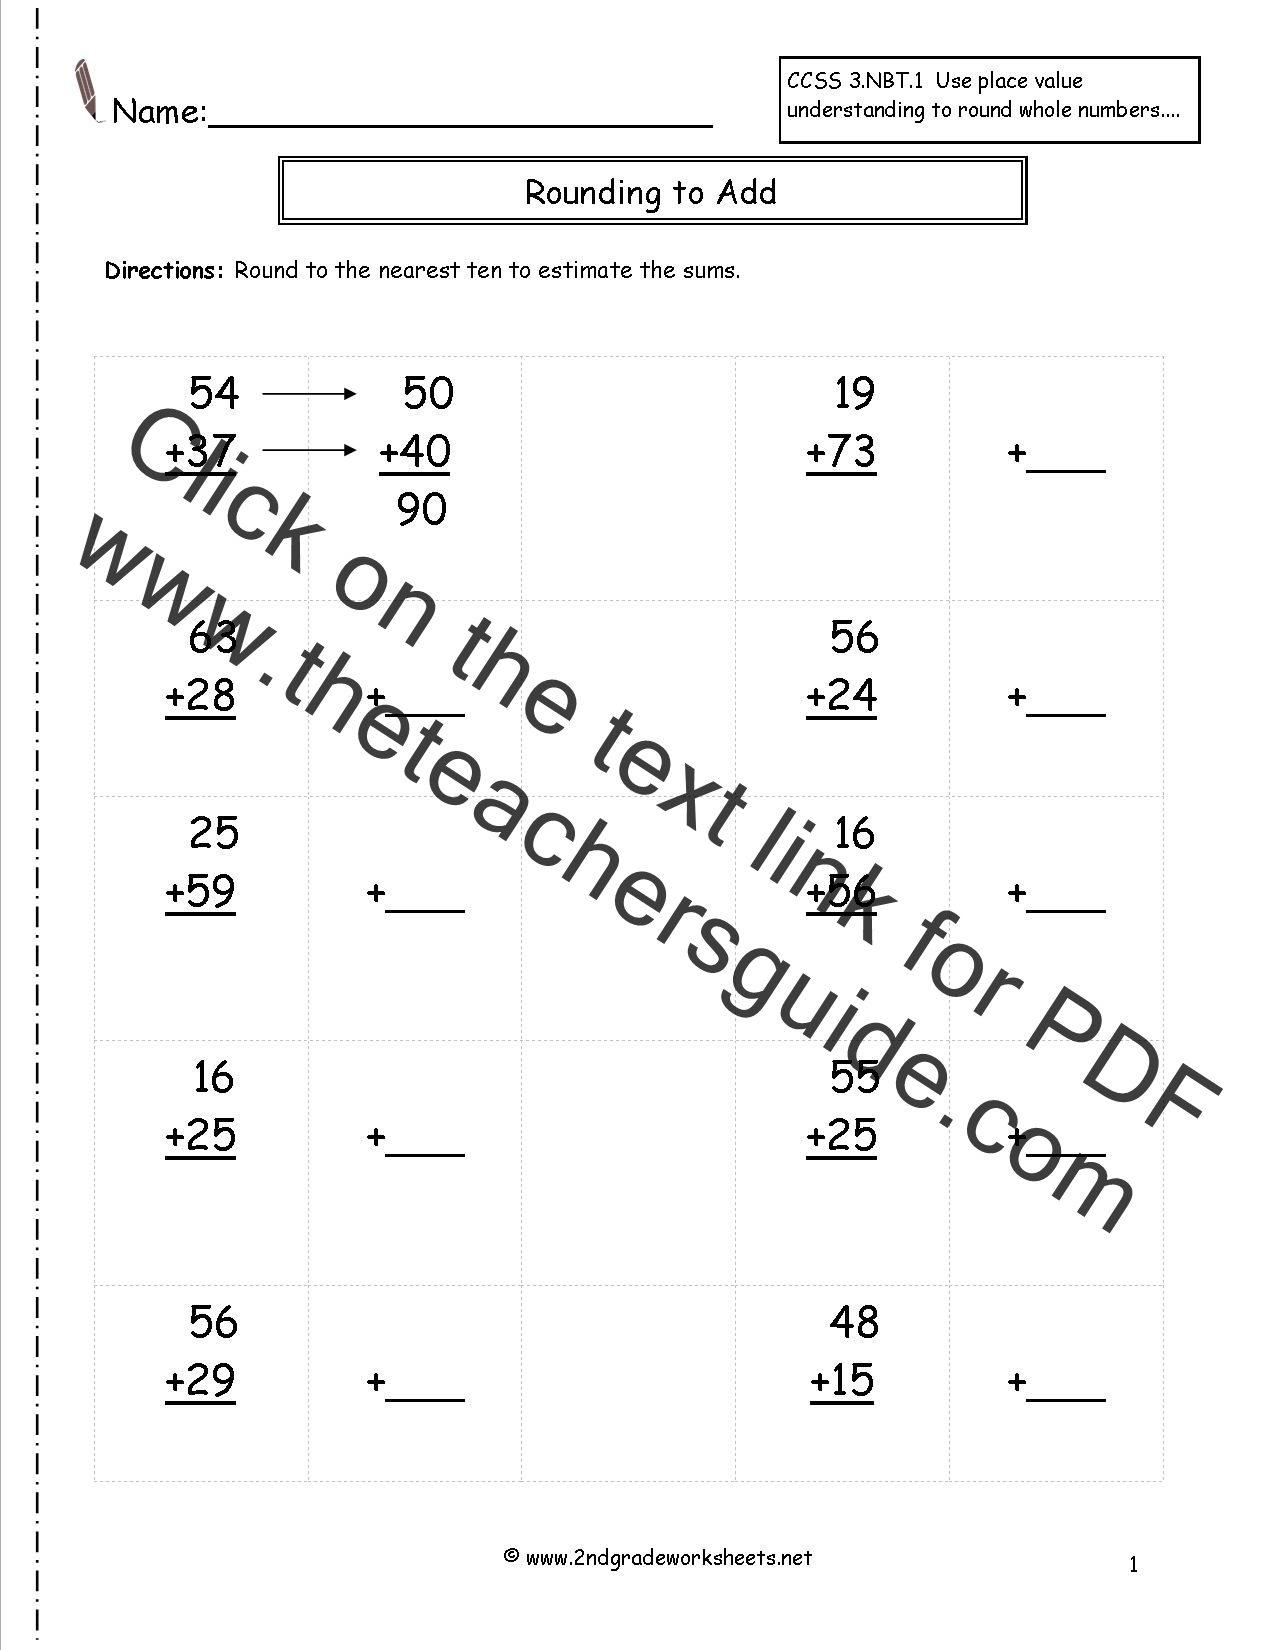 worksheet Adding And Subtracting Whole Numbers Worksheets rounding whole numbers worksheets to estimate the sum worksheet